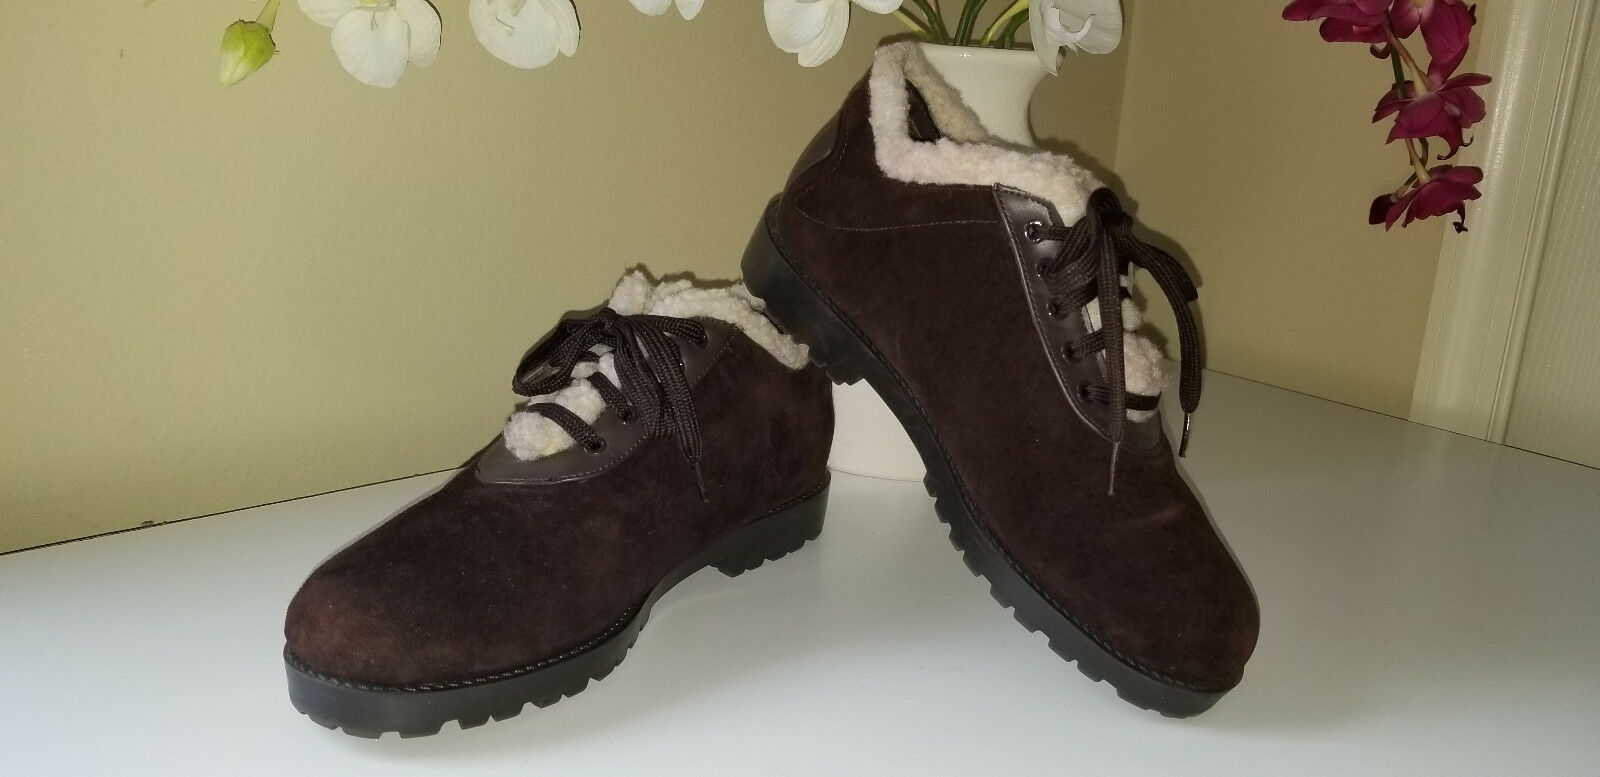 CHELSEA STUDIO Brown Suede Leather Lace Up Shearling Pile Trim Bootie shoes Sz.7M